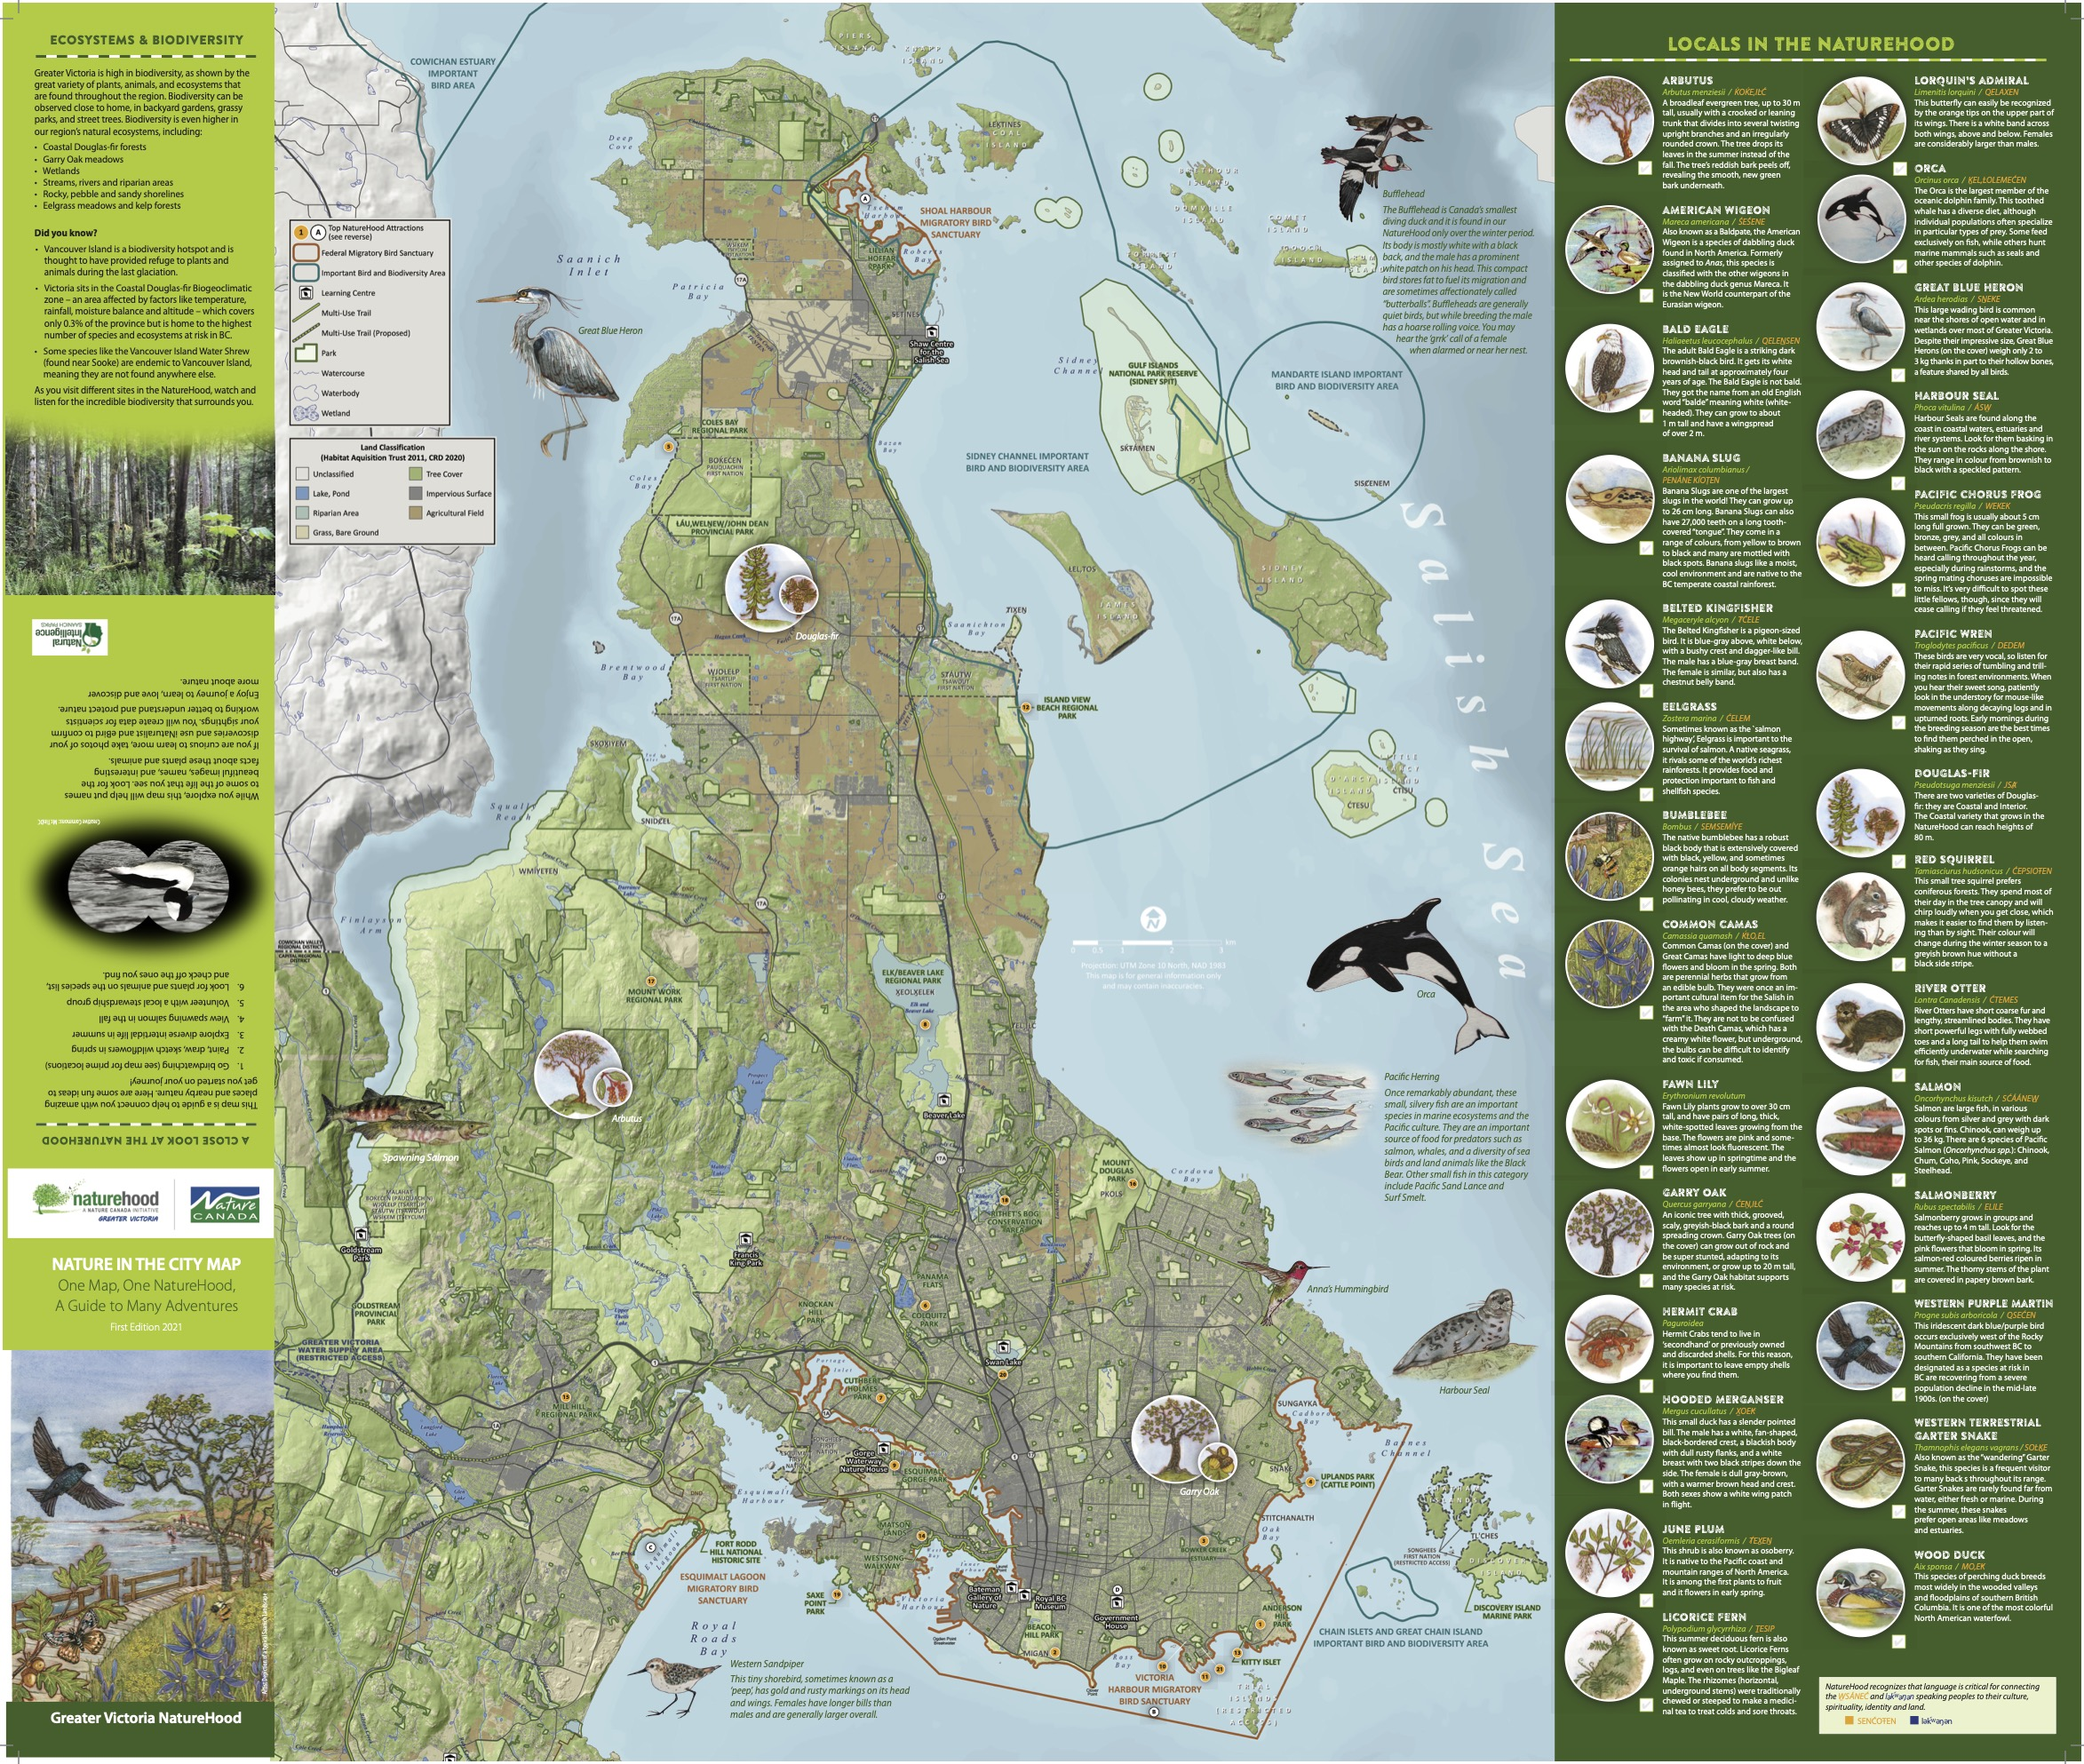 Greater Victoria NatureHood Map Page 1